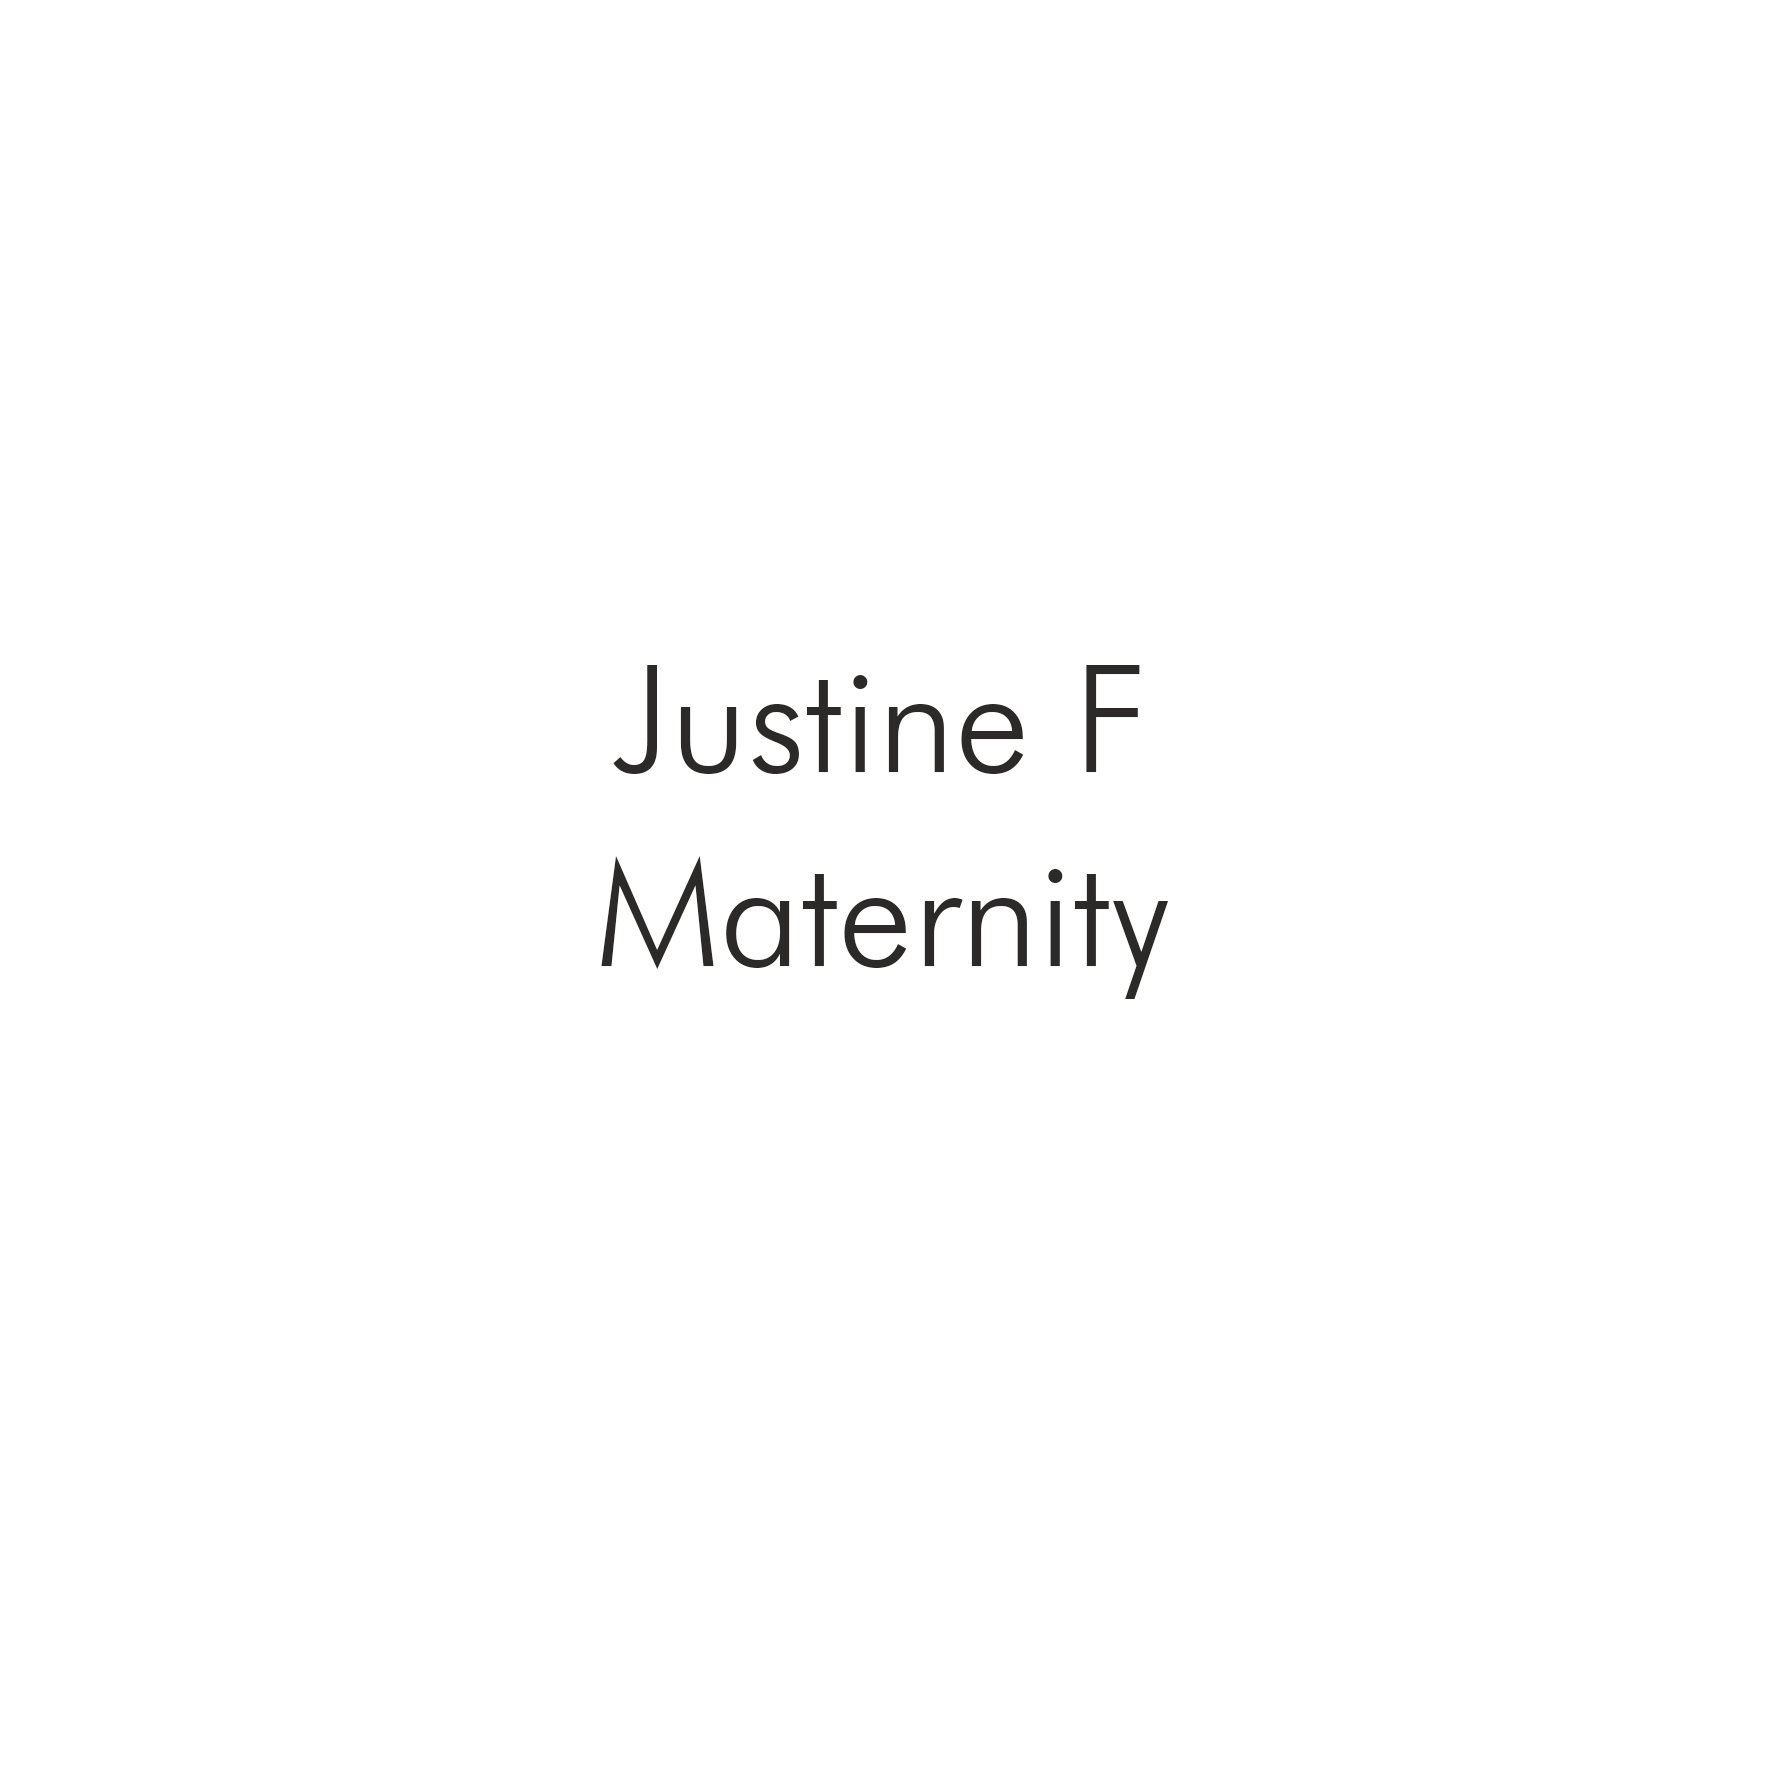 Justine F Maternity.png